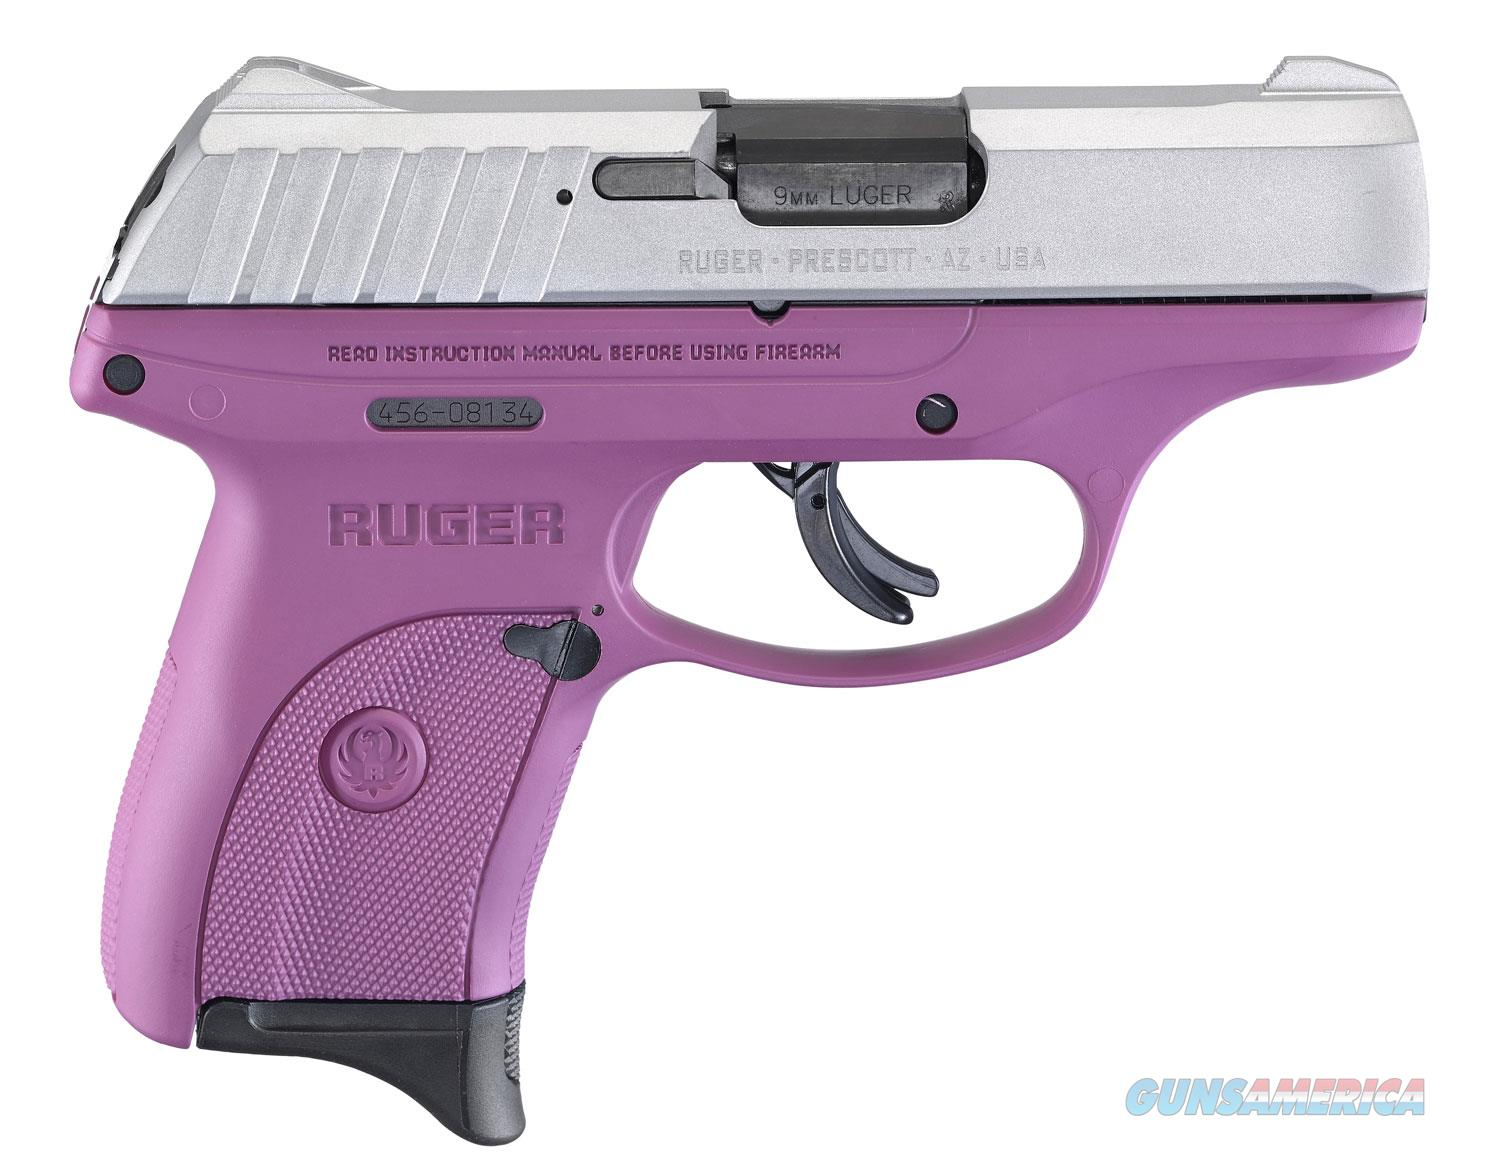 """Ruger EC9s 9mm 3295 3.12"""" 7+1 Purple/Silver Thumb Safety """"NO CREDIT CARD FEE"""" *New in Box*  Guns > Pistols > Ruger Semi-Auto Pistols > EC9"""